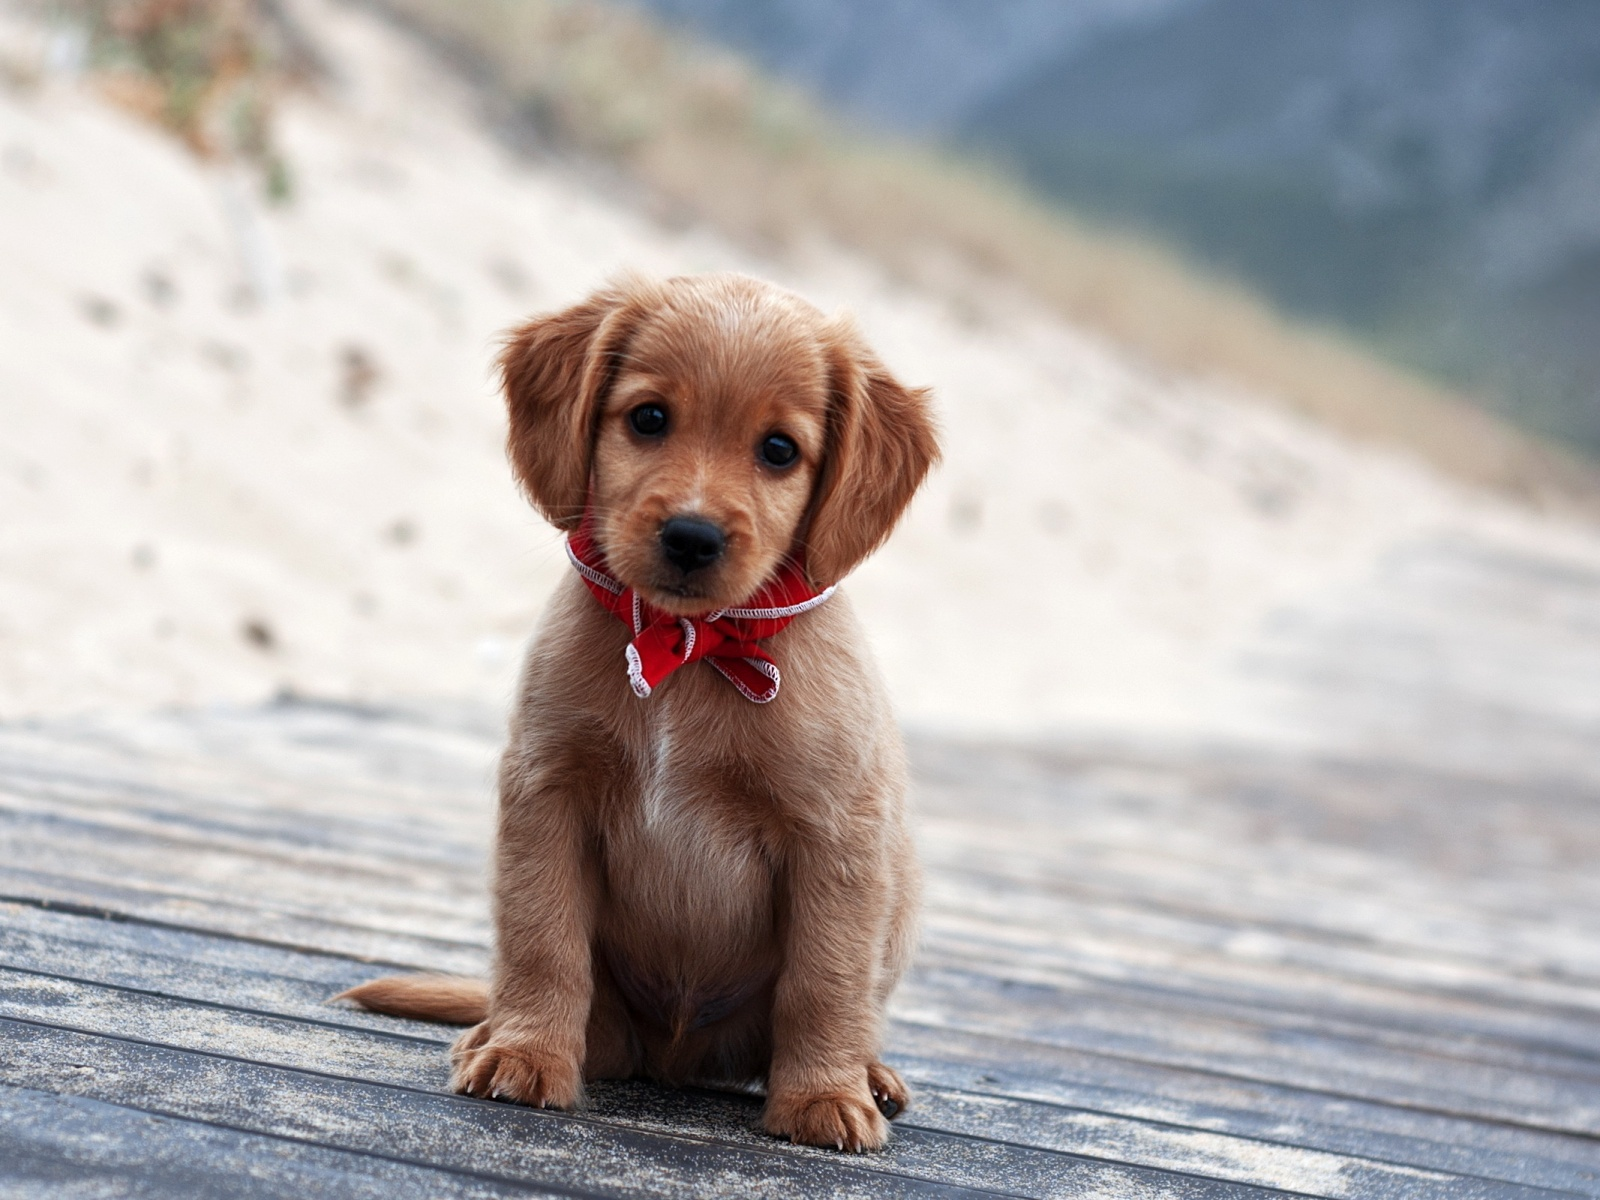 Cute and Adorable Pupp...